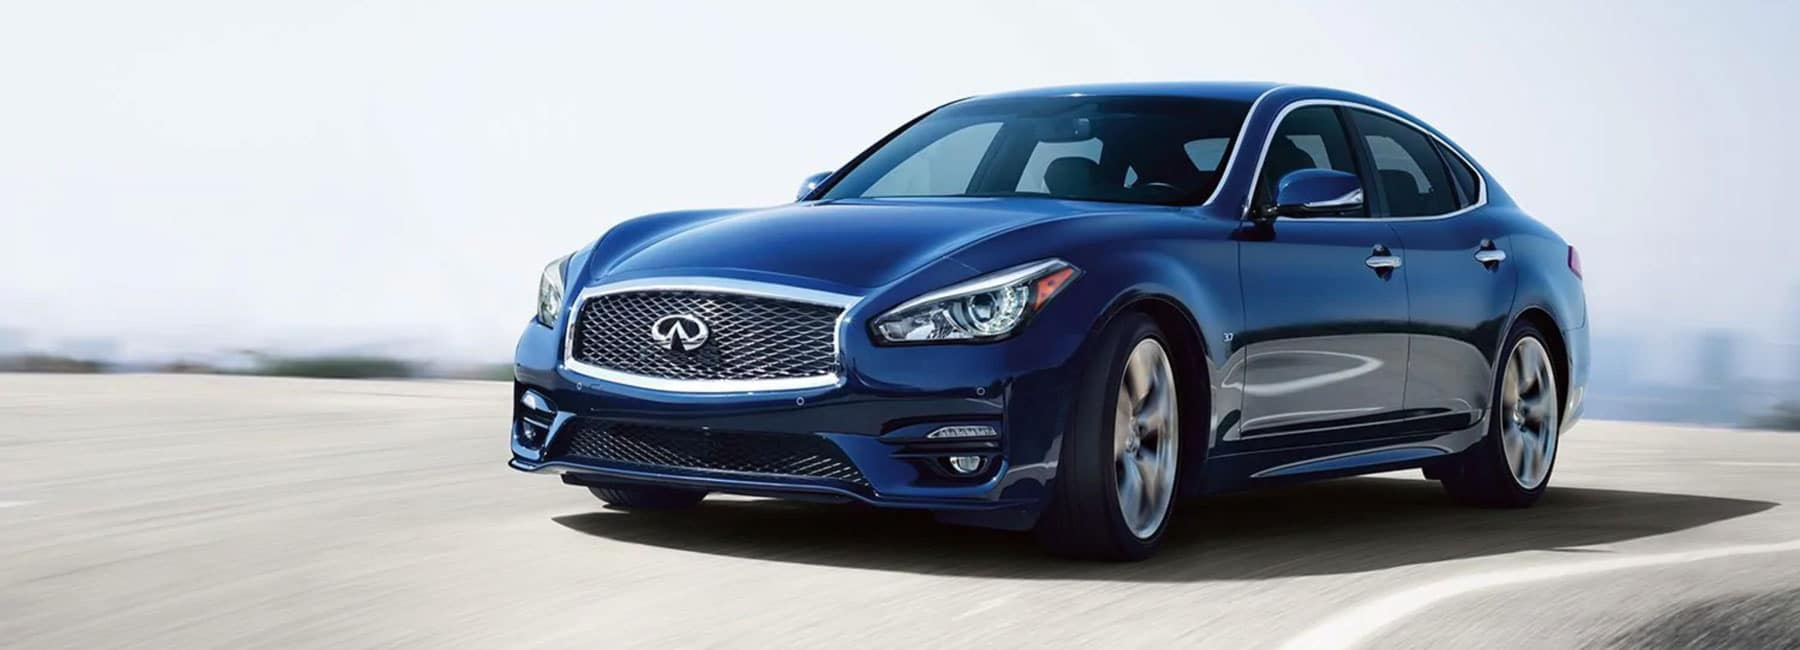 2019 INFINITY Q70 at Germain INFINITI of Easton